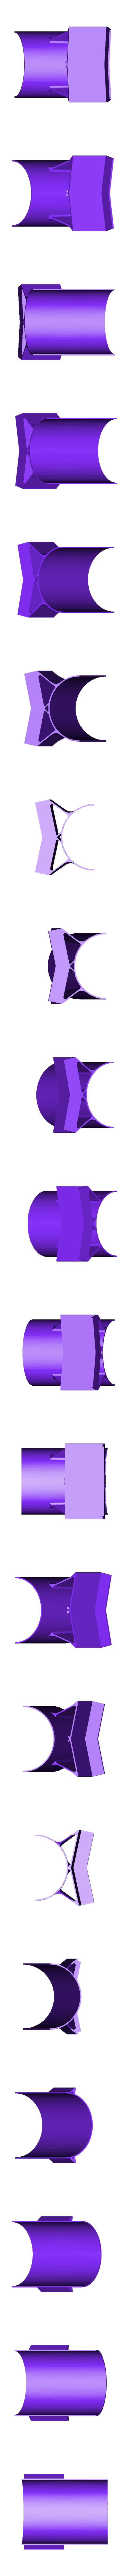 Thick_Wing_Rear_Mount.stl Download free STL file Flyer Mk. 1 • 3D printing object, billbo1958